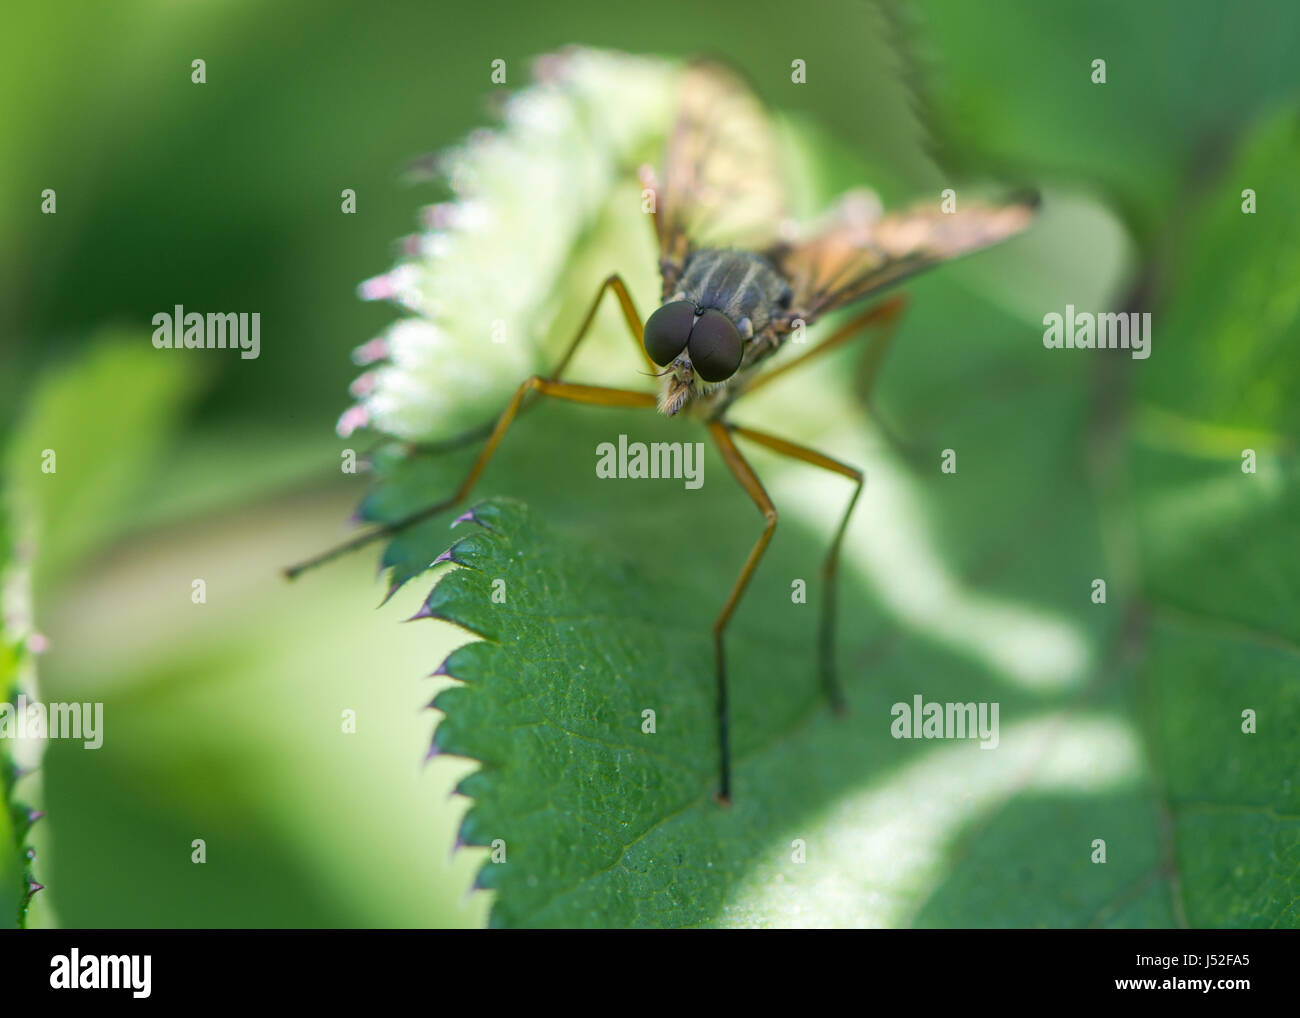 Snipe fly (Rhagio scolopaceus). Large compound eyes and slender orange legs of true fly in the family Rhagionidae - Stock Image